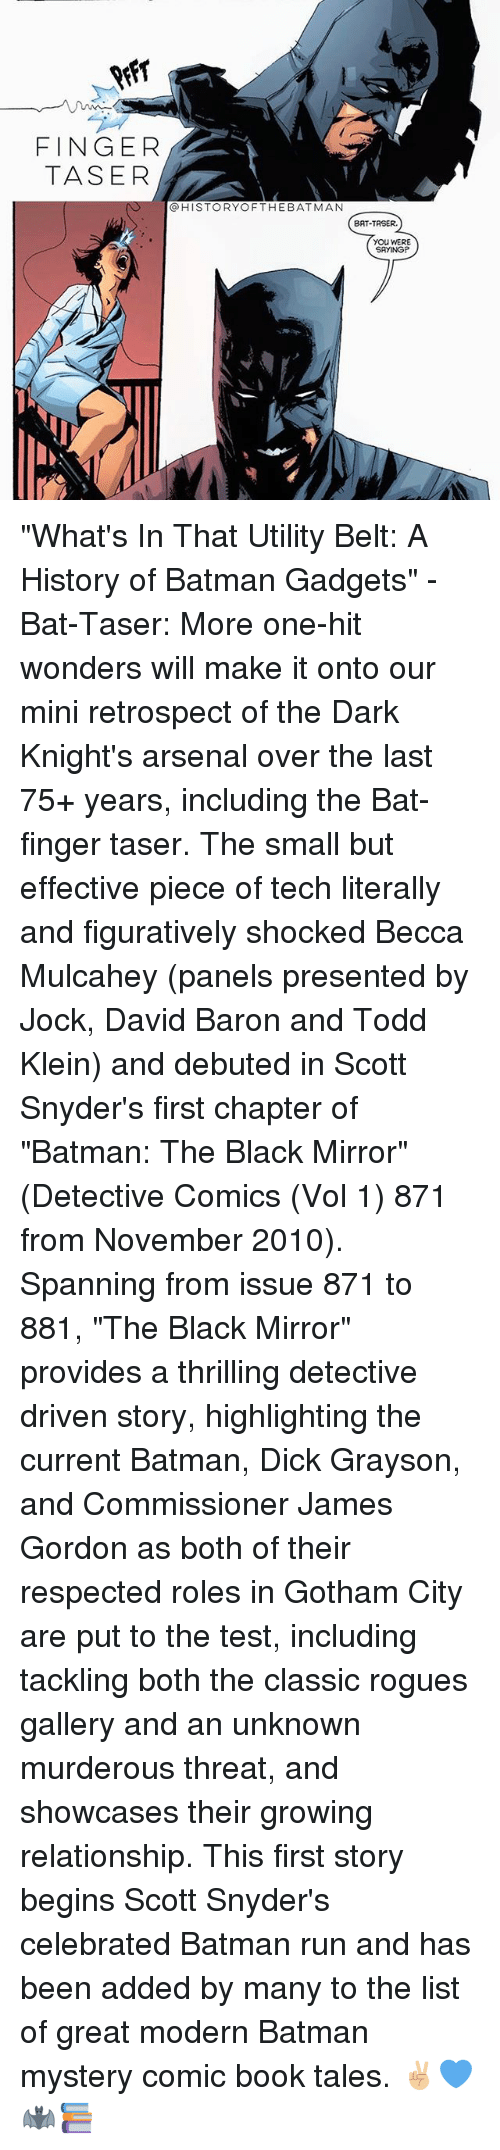 "figuratively: FINGER  TASER  @HISTORYOFTHEBATMAN  BAT-TASER.  YOU WERE  SAYING ""What's In That Utility Belt: A History of Batman Gadgets"" - Bat-Taser: More one-hit wonders will make it onto our mini retrospect of the Dark Knight's arsenal over the last 75+ years, including the Bat-finger taser. The small but effective piece of tech literally and figuratively shocked Becca Mulcahey (panels presented by Jock, David Baron and Todd Klein) and debuted in Scott Snyder's first chapter of ""Batman: The Black Mirror"" (Detective Comics (Vol 1) 871 from November 2010). Spanning from issue 871 to 881, ""The Black Mirror"" provides a thrilling detective driven story, highlighting the current Batman, Dick Grayson, and Commissioner James Gordon as both of their respected roles in Gotham City are put to the test, including tackling both the classic rogues gallery and an unknown murderous threat, and showcases their growing relationship. This first story begins Scott Snyder's celebrated Batman run and has been added by many to the list of great modern Batman mystery comic book tales. ✌🏼💙🦇📚"